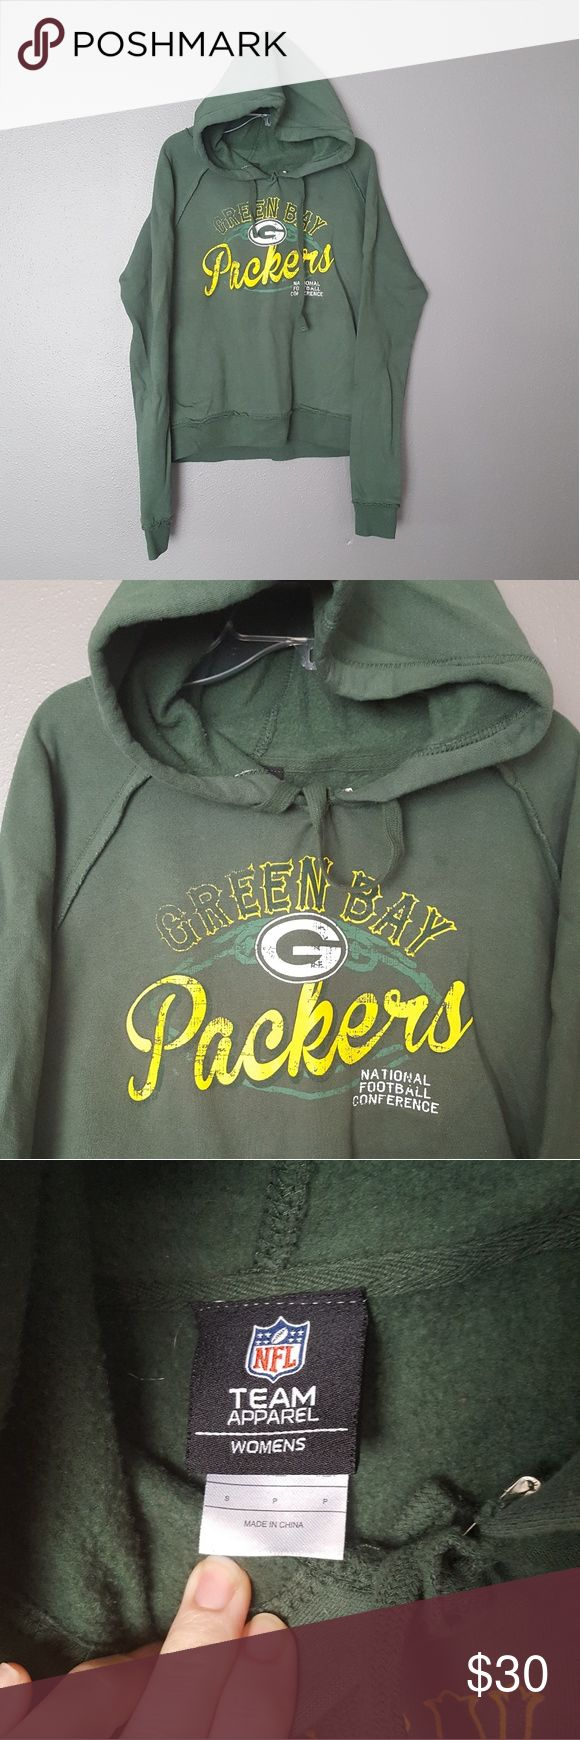 """《NFL Team Apparell》Greenbay Packers Hoodie Worn once, washed once. NFL Team Apparell Greenbay Packers hoodie. Size small, true to size.  Green hoodie. Chest design is distressed, not from wear.   Pit to pit 21"""" (42 around) Top to bottom hem is 23""""  Reasonable offers considered.  Tags: green, yellow, Green Bay, Packers, hood, casual, comfy, sweats, football, NFL, national football conference NFL Team Apparell Tops Sweatshirts & Hoodies"""